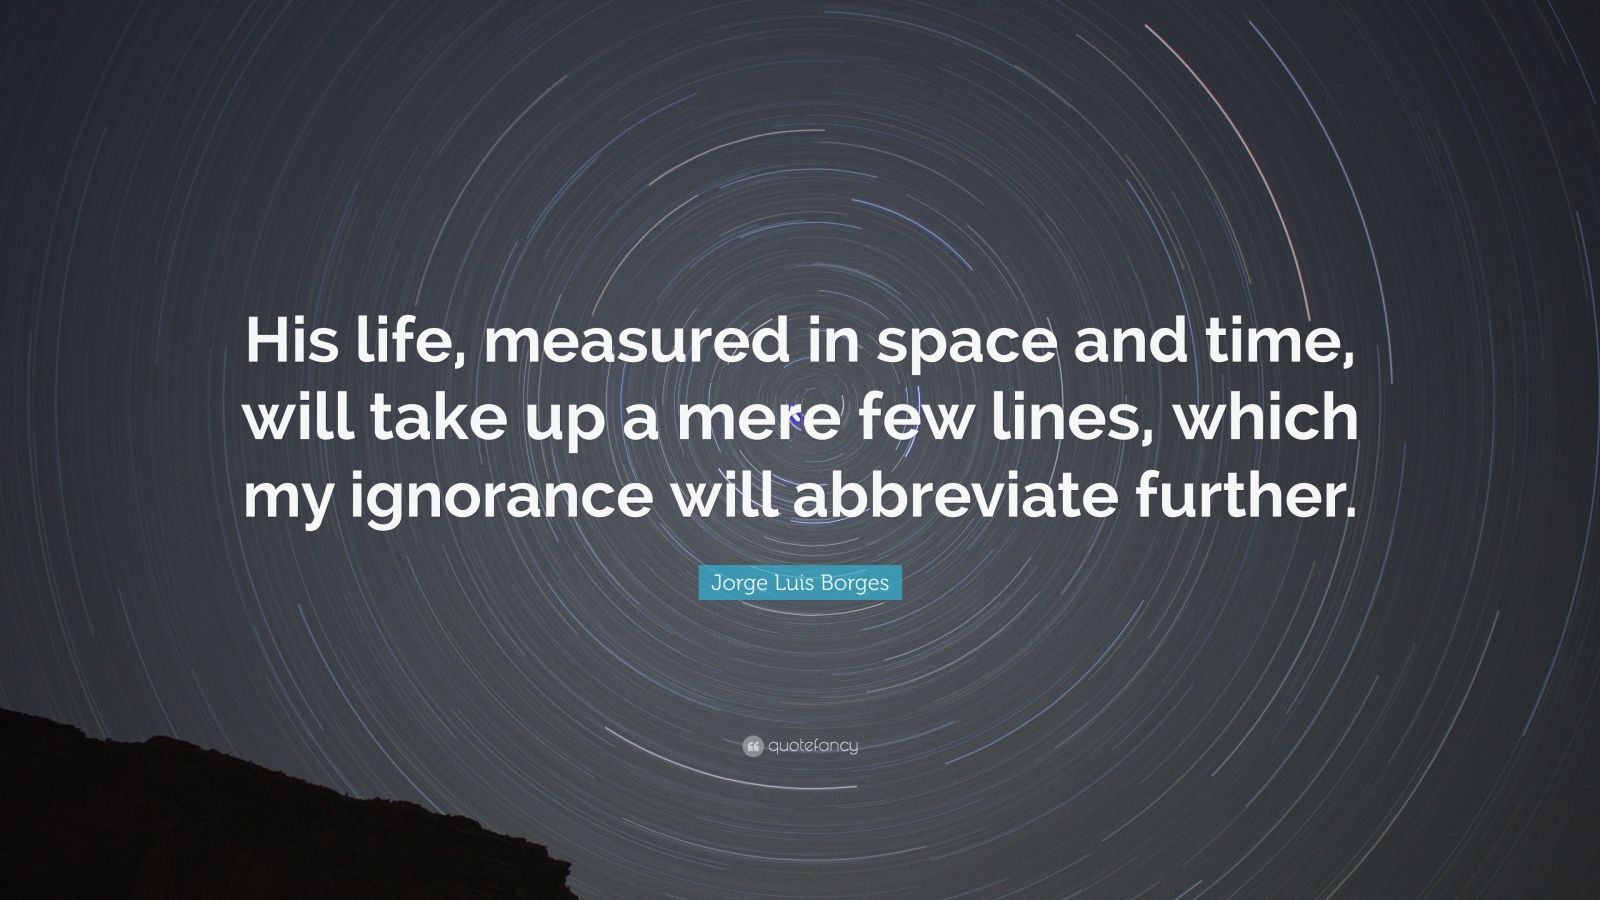 """Jorge Luis Borges Quote: """"His life, measured in space and time, will take up a mere few lines, which my ignorance will abbreviate further."""""""